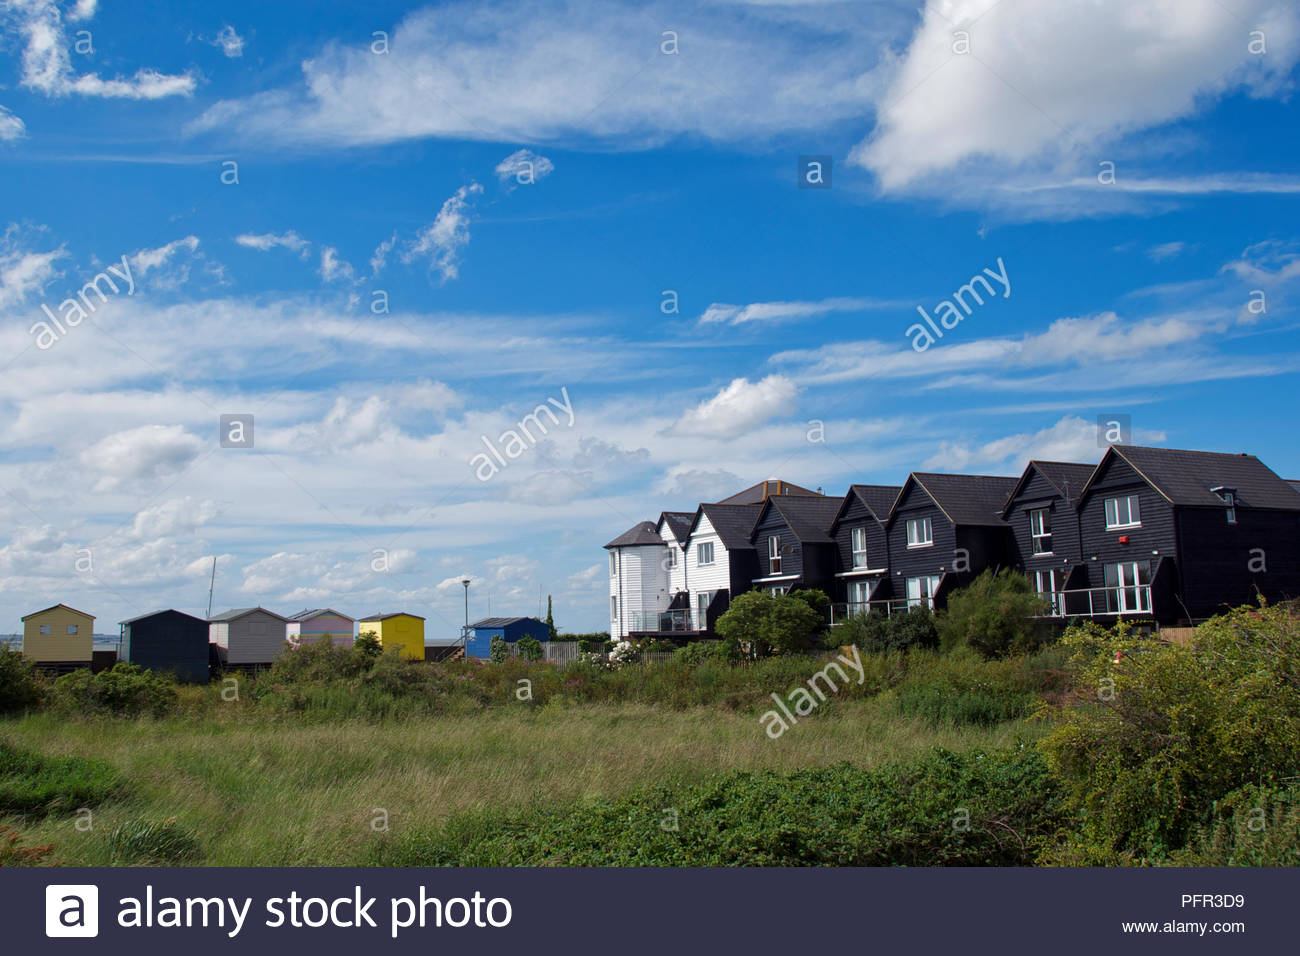 Houses on Collingwood Road and beach huts along Island Wall in Whitstable, Kent, England Stock Photo